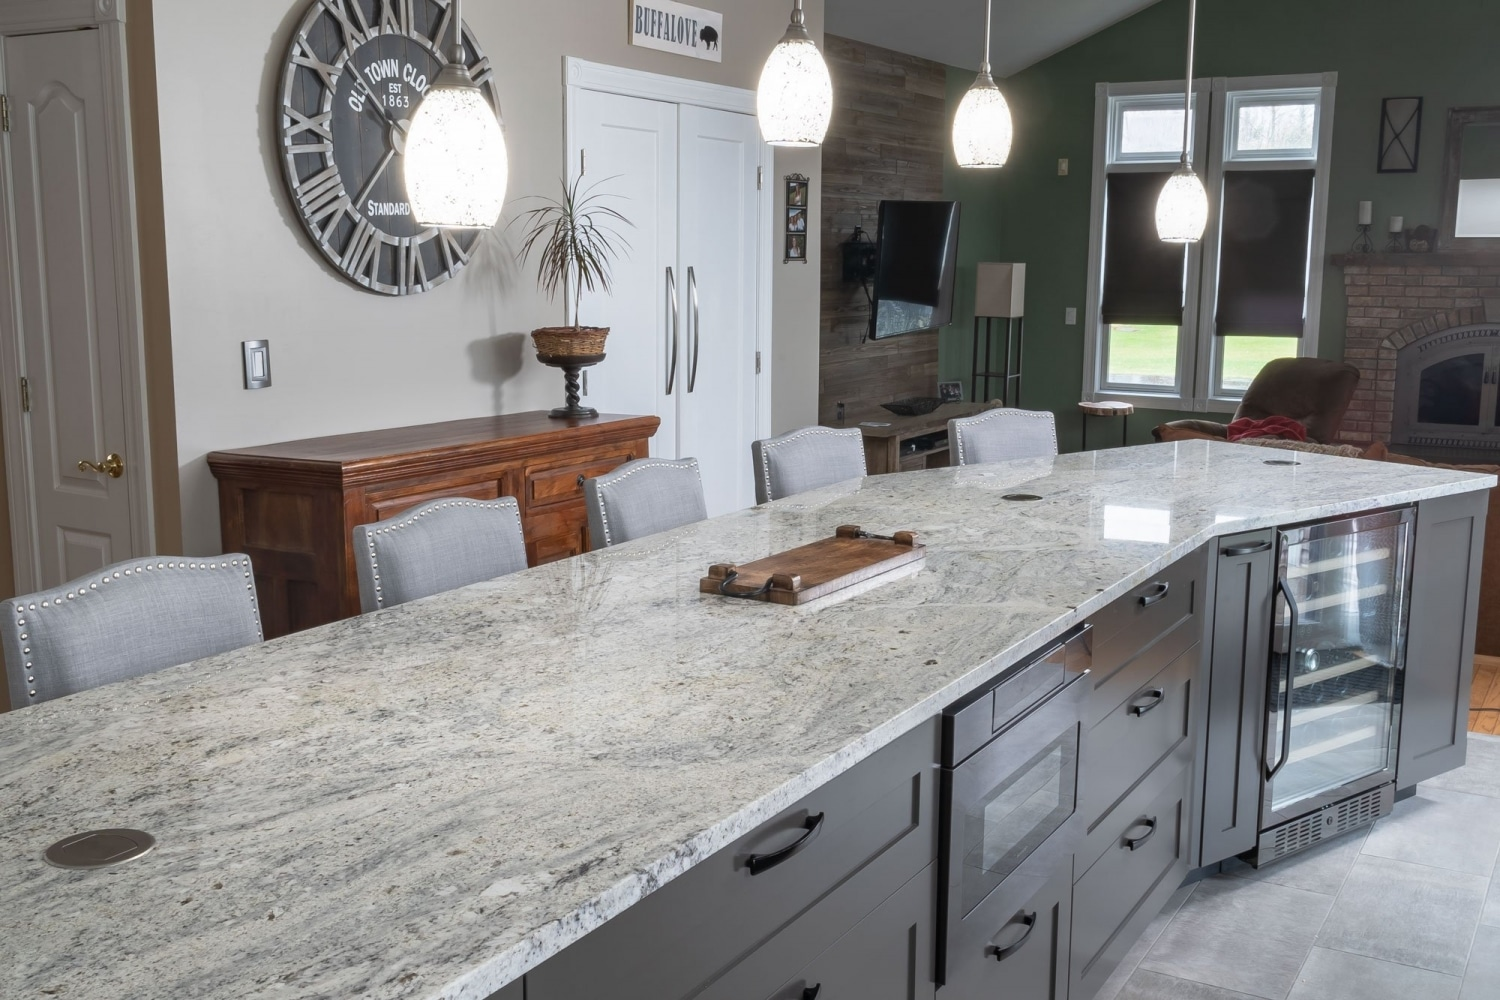 empire-gmq-marble-countertops-custom-kitchens-custom-cabinet-doors-14